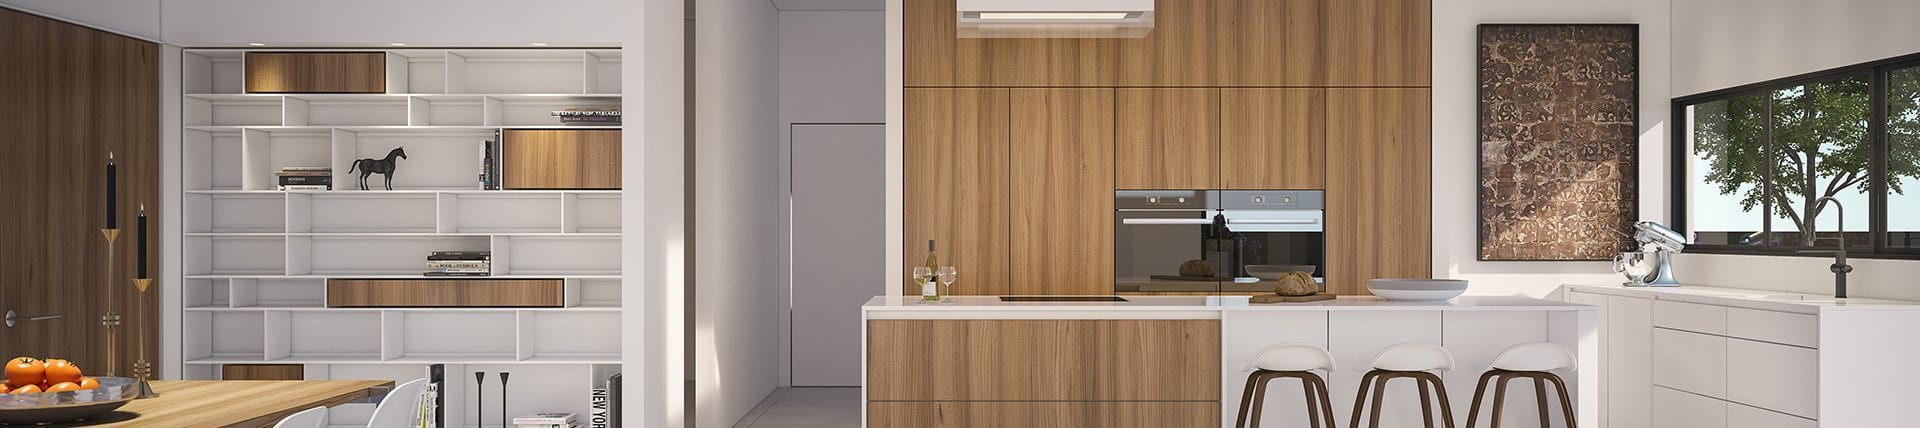 Maayan-Golan_Architectural-Visualization_Contact-us_kitchen-visualization_interior-design